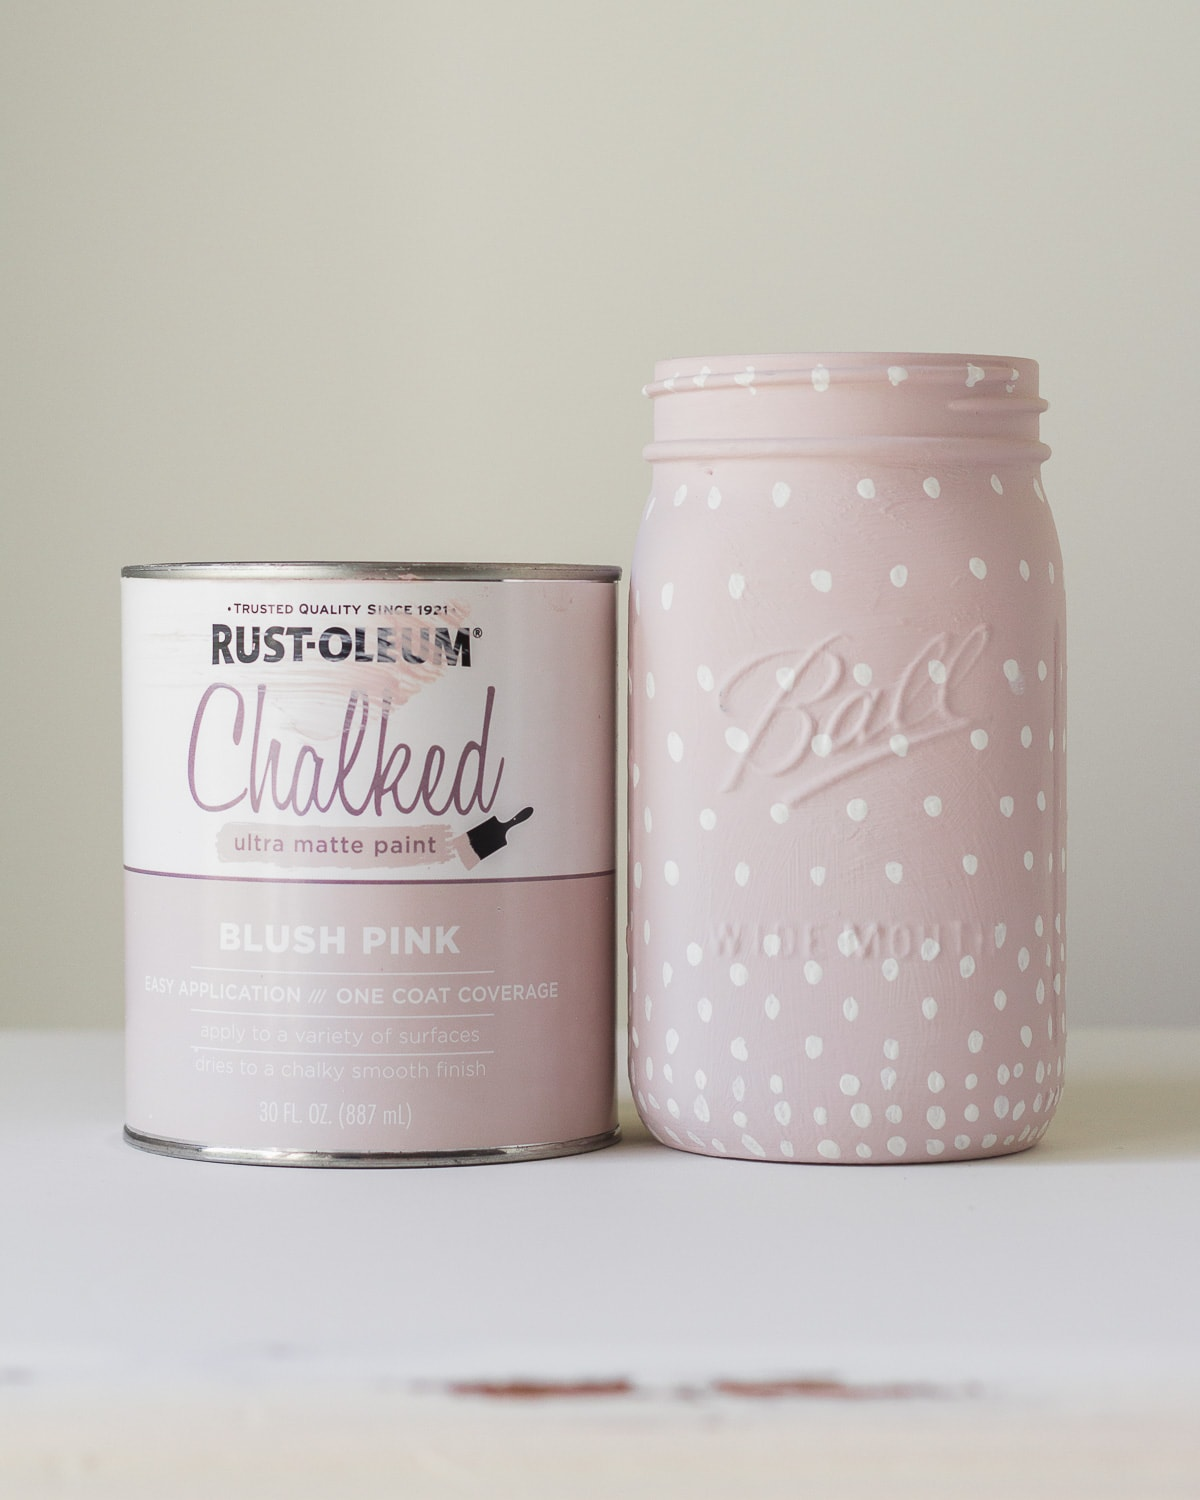 A can of Rust-Oleum chalked paint in Blush Pink and a glass jar painted with the paint, plus white polka dots.